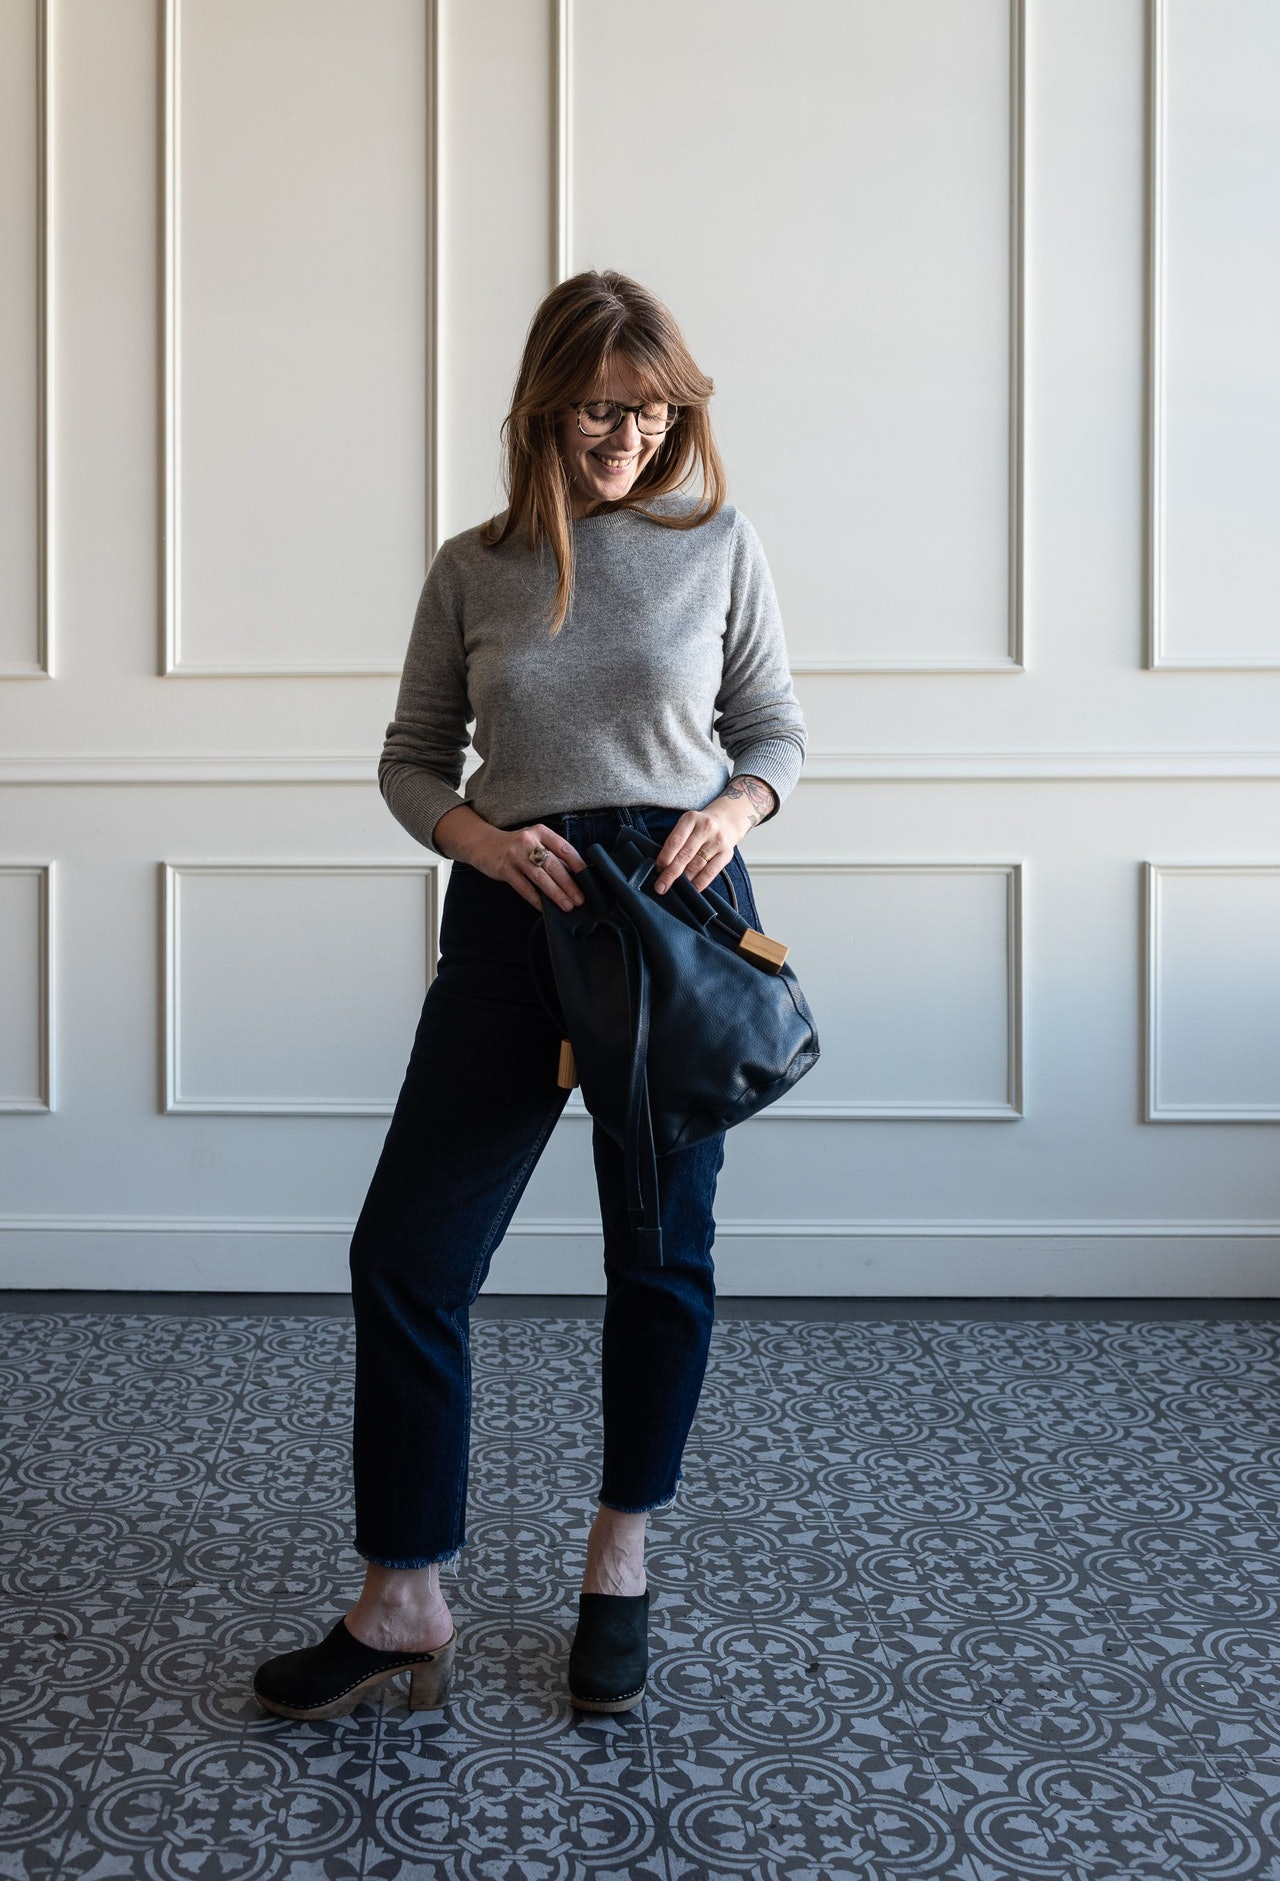 Fall 10x10 Day 4 Look - Everlane Cashmere Crew Sweater in Heather Grey by Conscious by Chloé